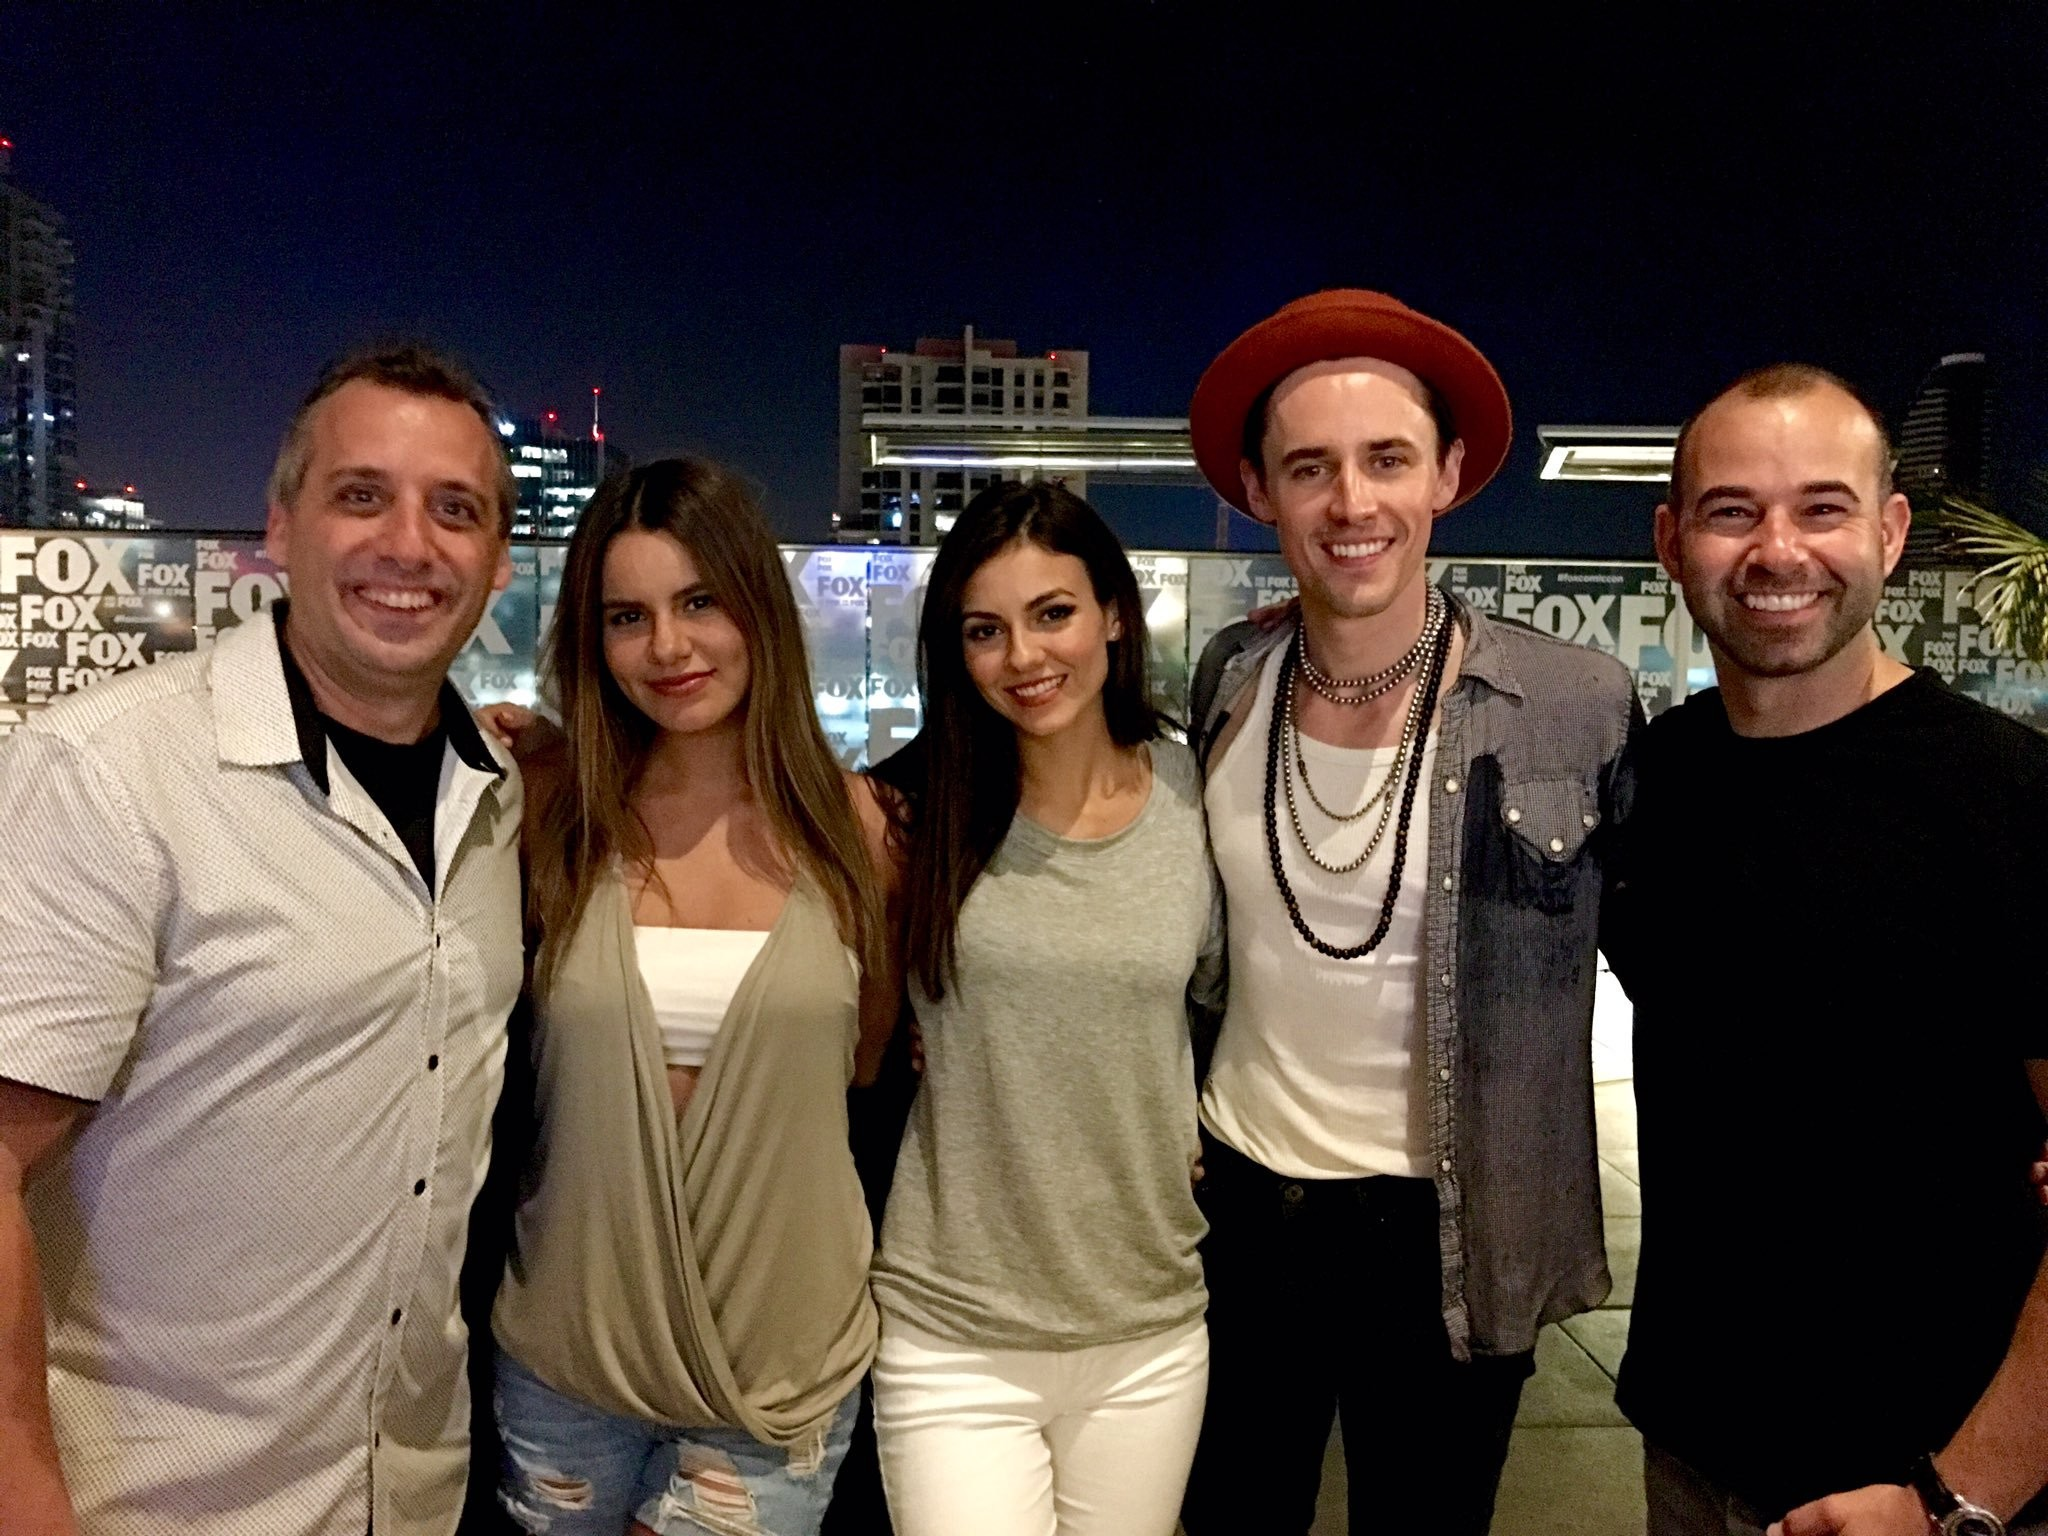 "2048x1536 Murr on Twitter: ""So much fun hanging out with @VictoriaJustice  @reevecarney @themadisongrace @Joe_Gatto @truTVjokers  https://t.co/Jdf4EecpLI"""